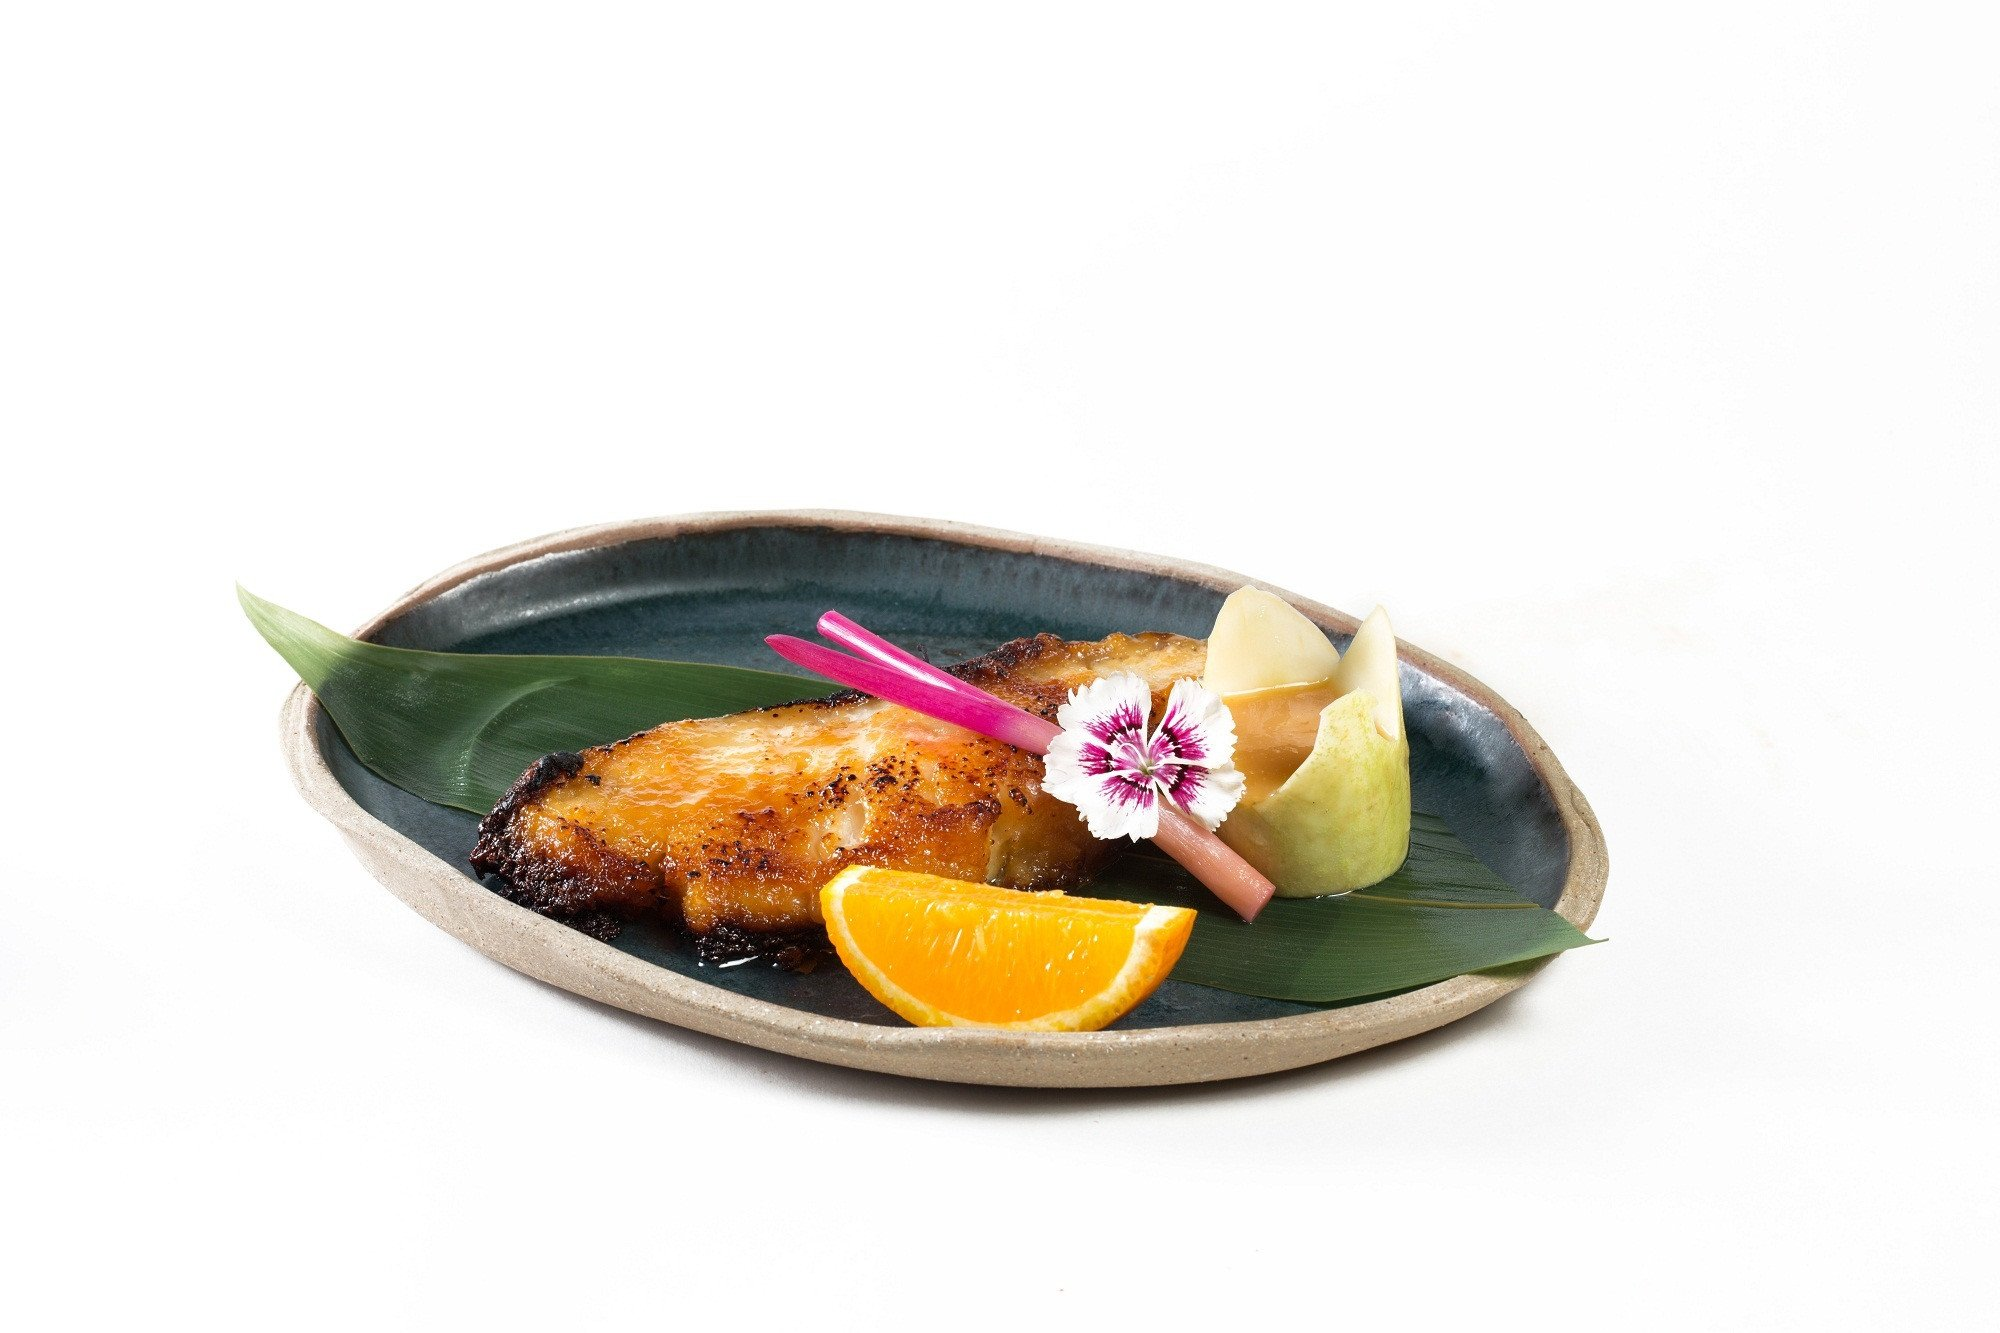 Relish on some authentic, indigenous Asian food at Happy Thai